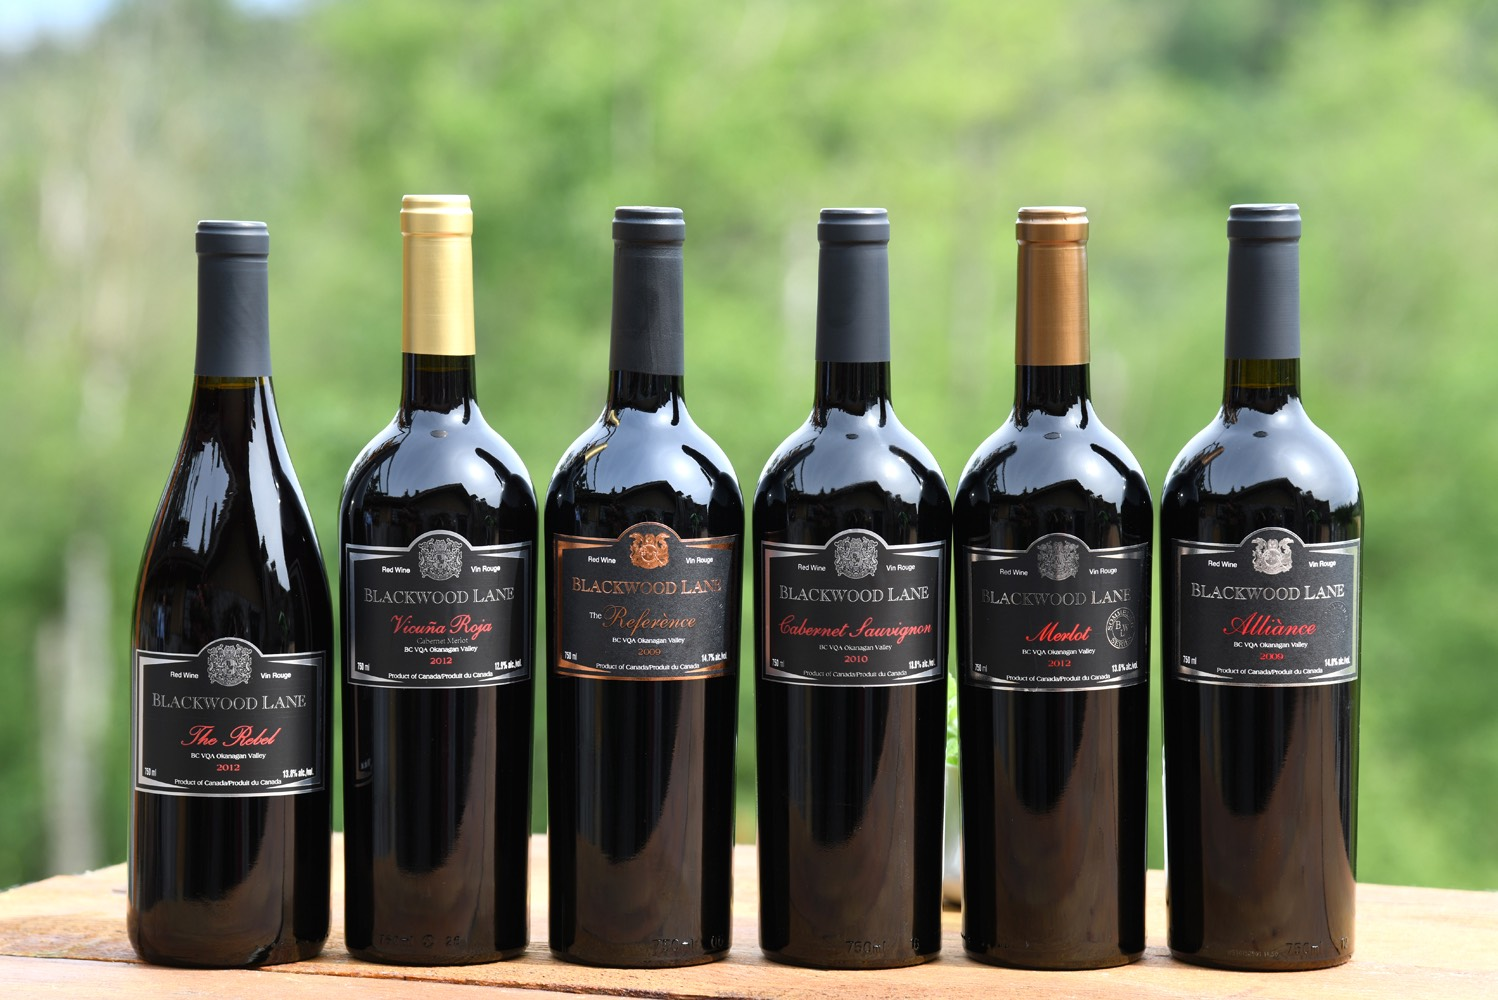 red wines from Blackwood Lane Winery